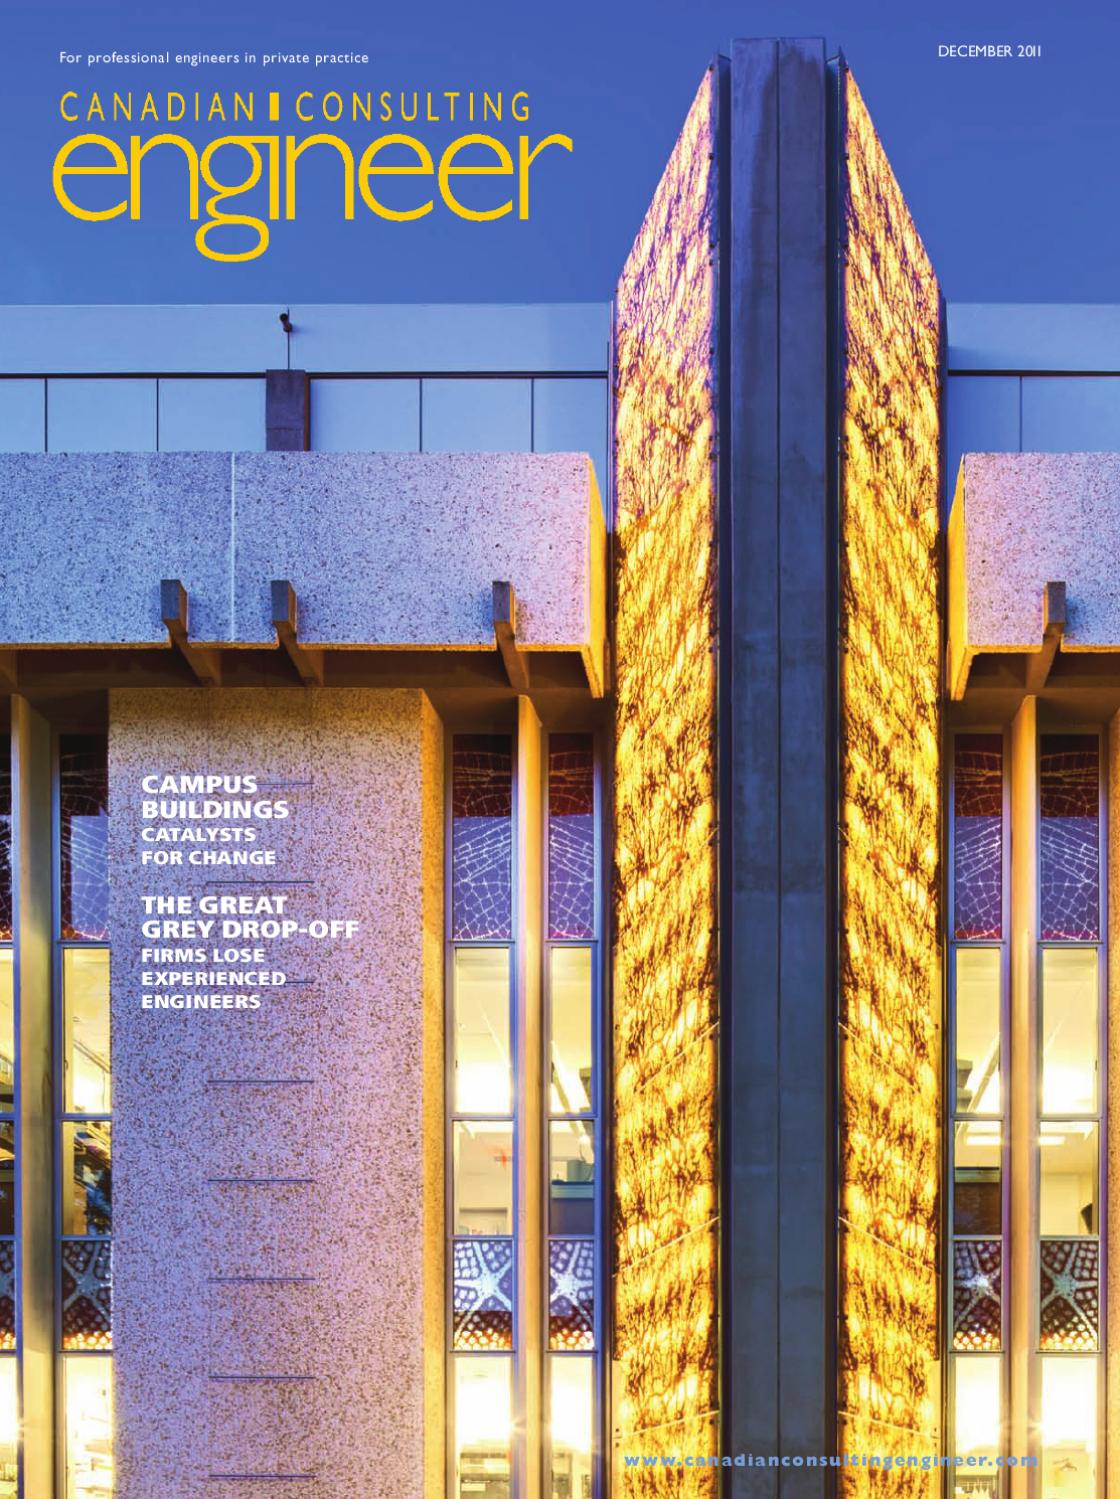 Canadian Consulting Engineer December 2011 by Annex Business Media